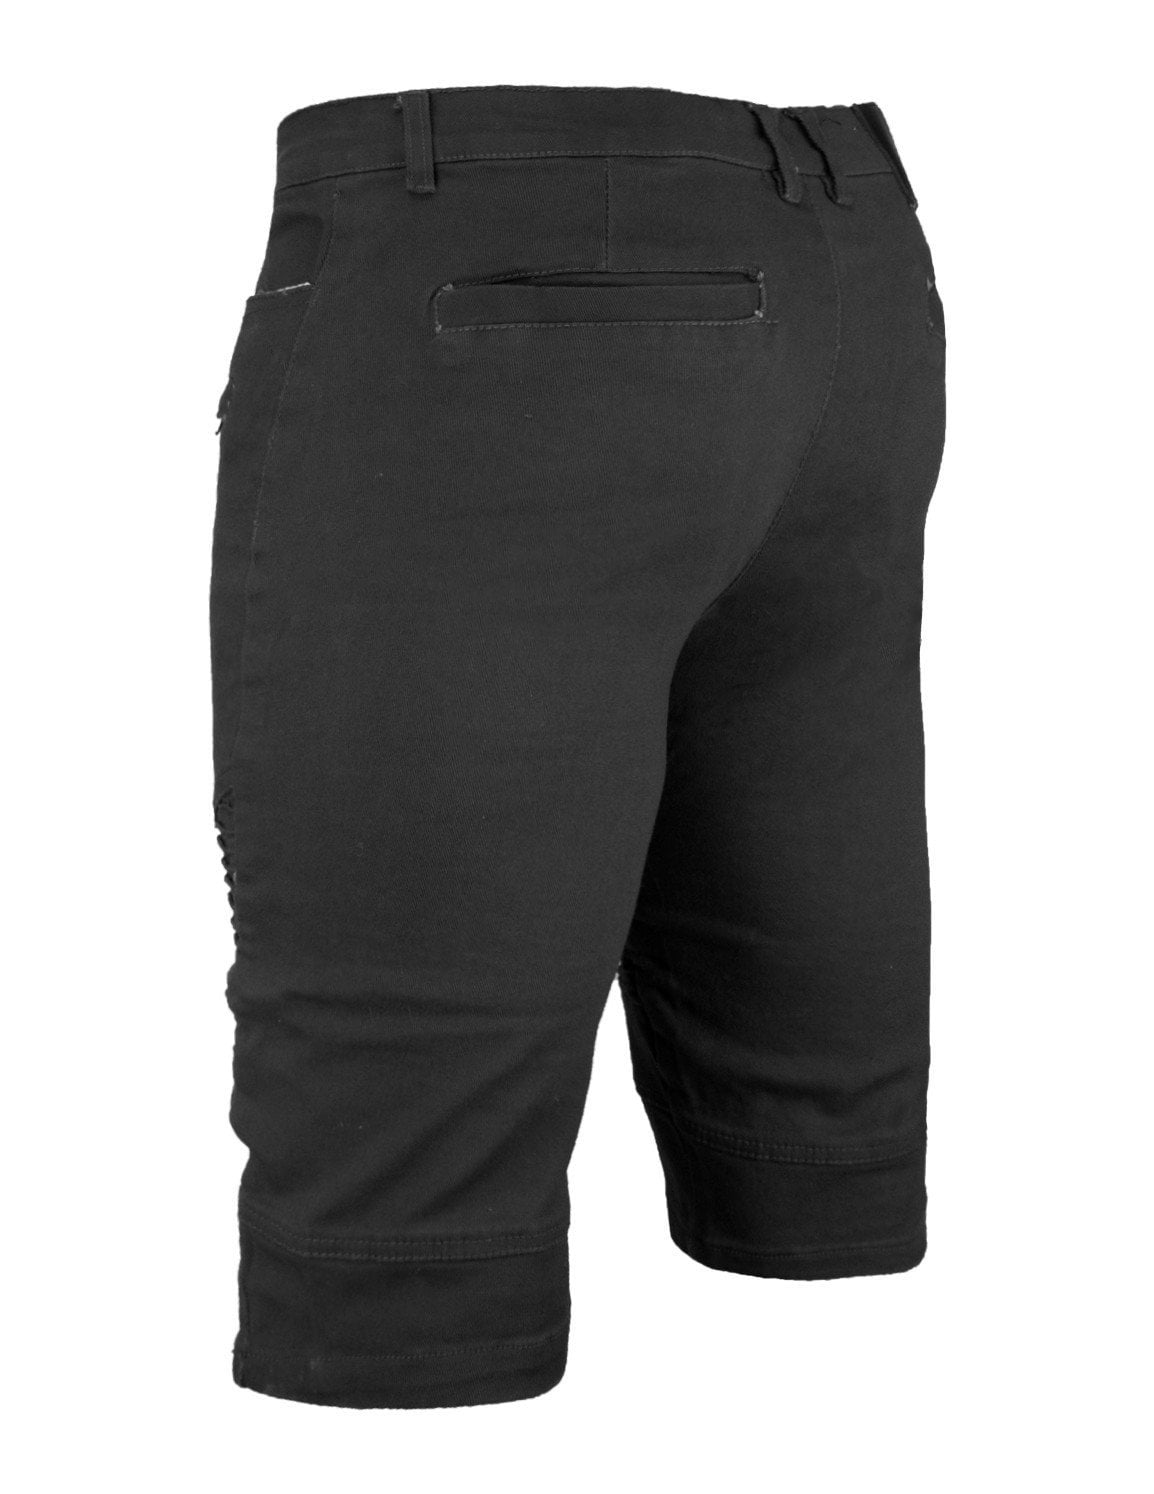 Men's Premium BLACK JEANS Biker  BELT LOOP Slim Shorts free shipping